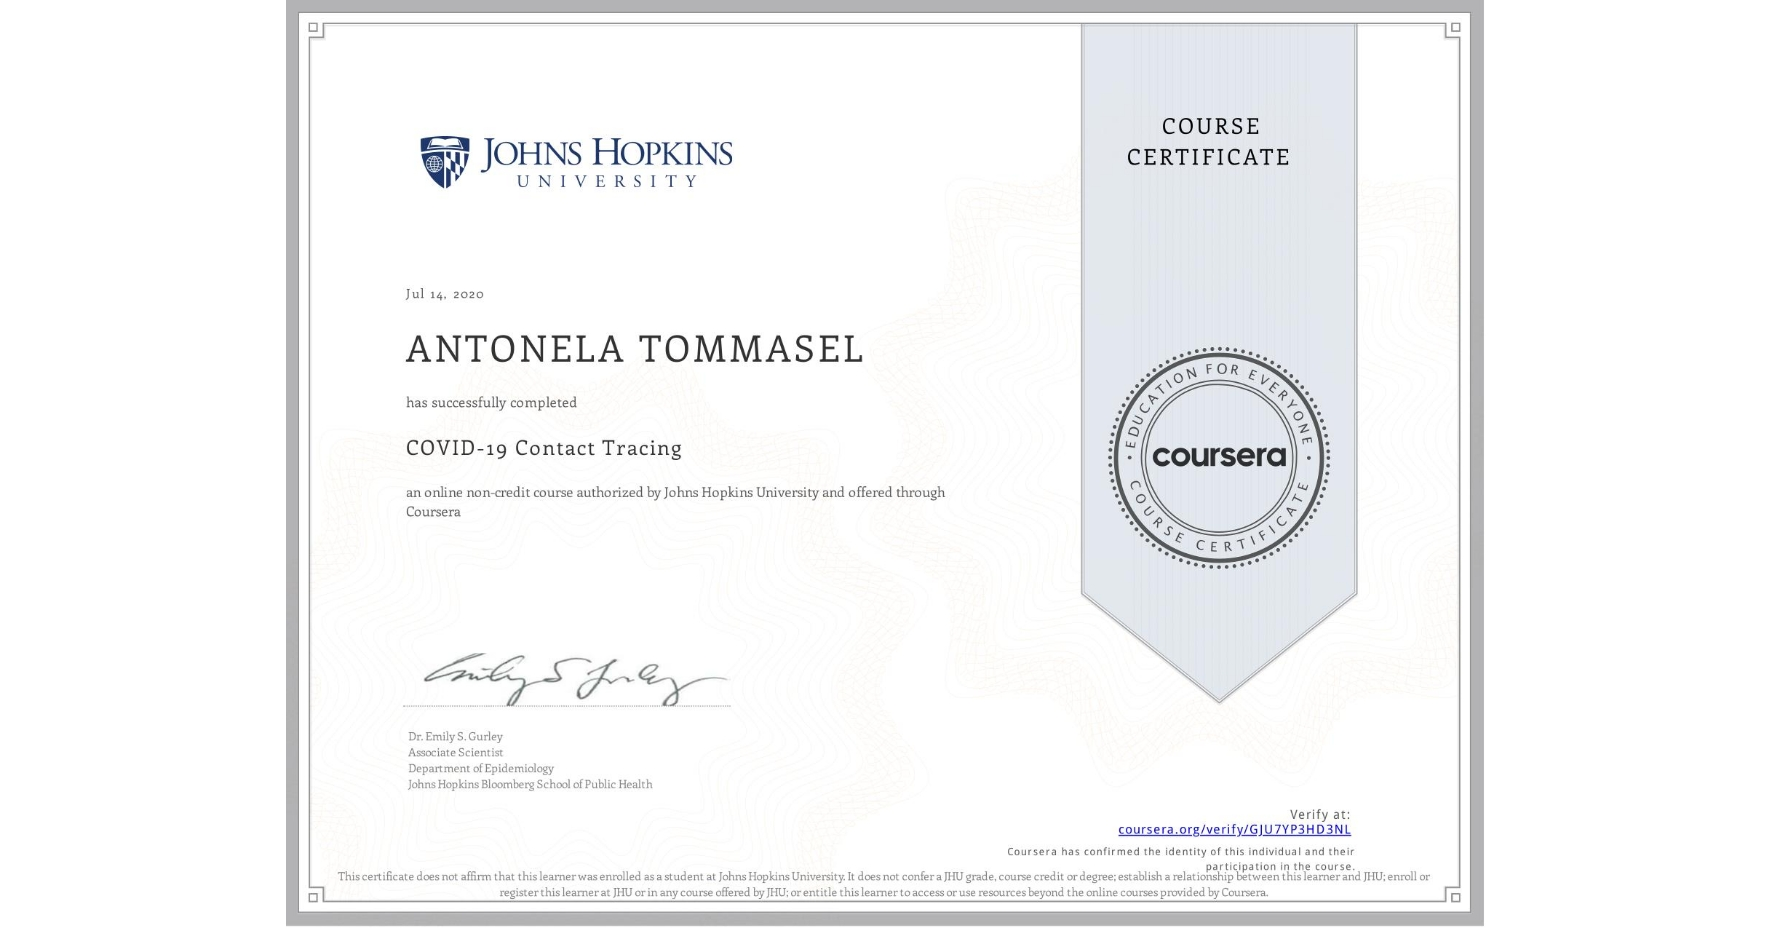 View certificate for Antonela Tommasel, COVID-19 Contact Tracing, an online non-credit course authorized by Johns Hopkins University and offered through Coursera